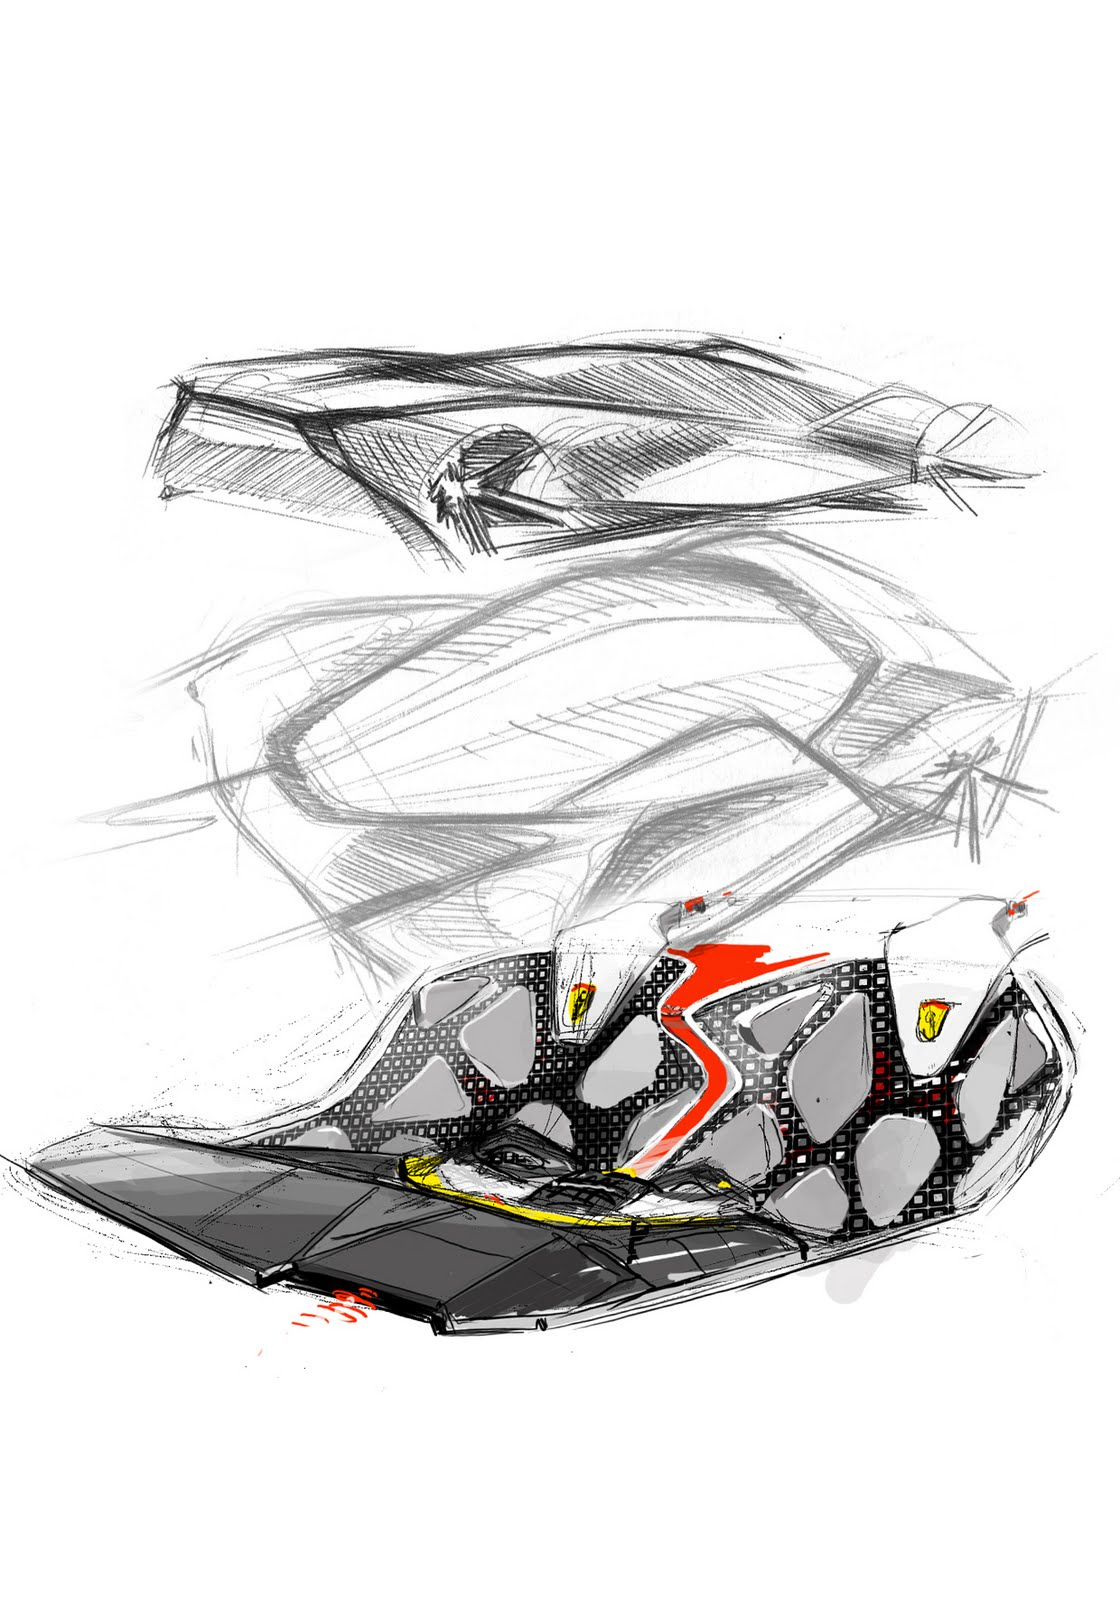 Ferrari World Design Contest And The Winner Is